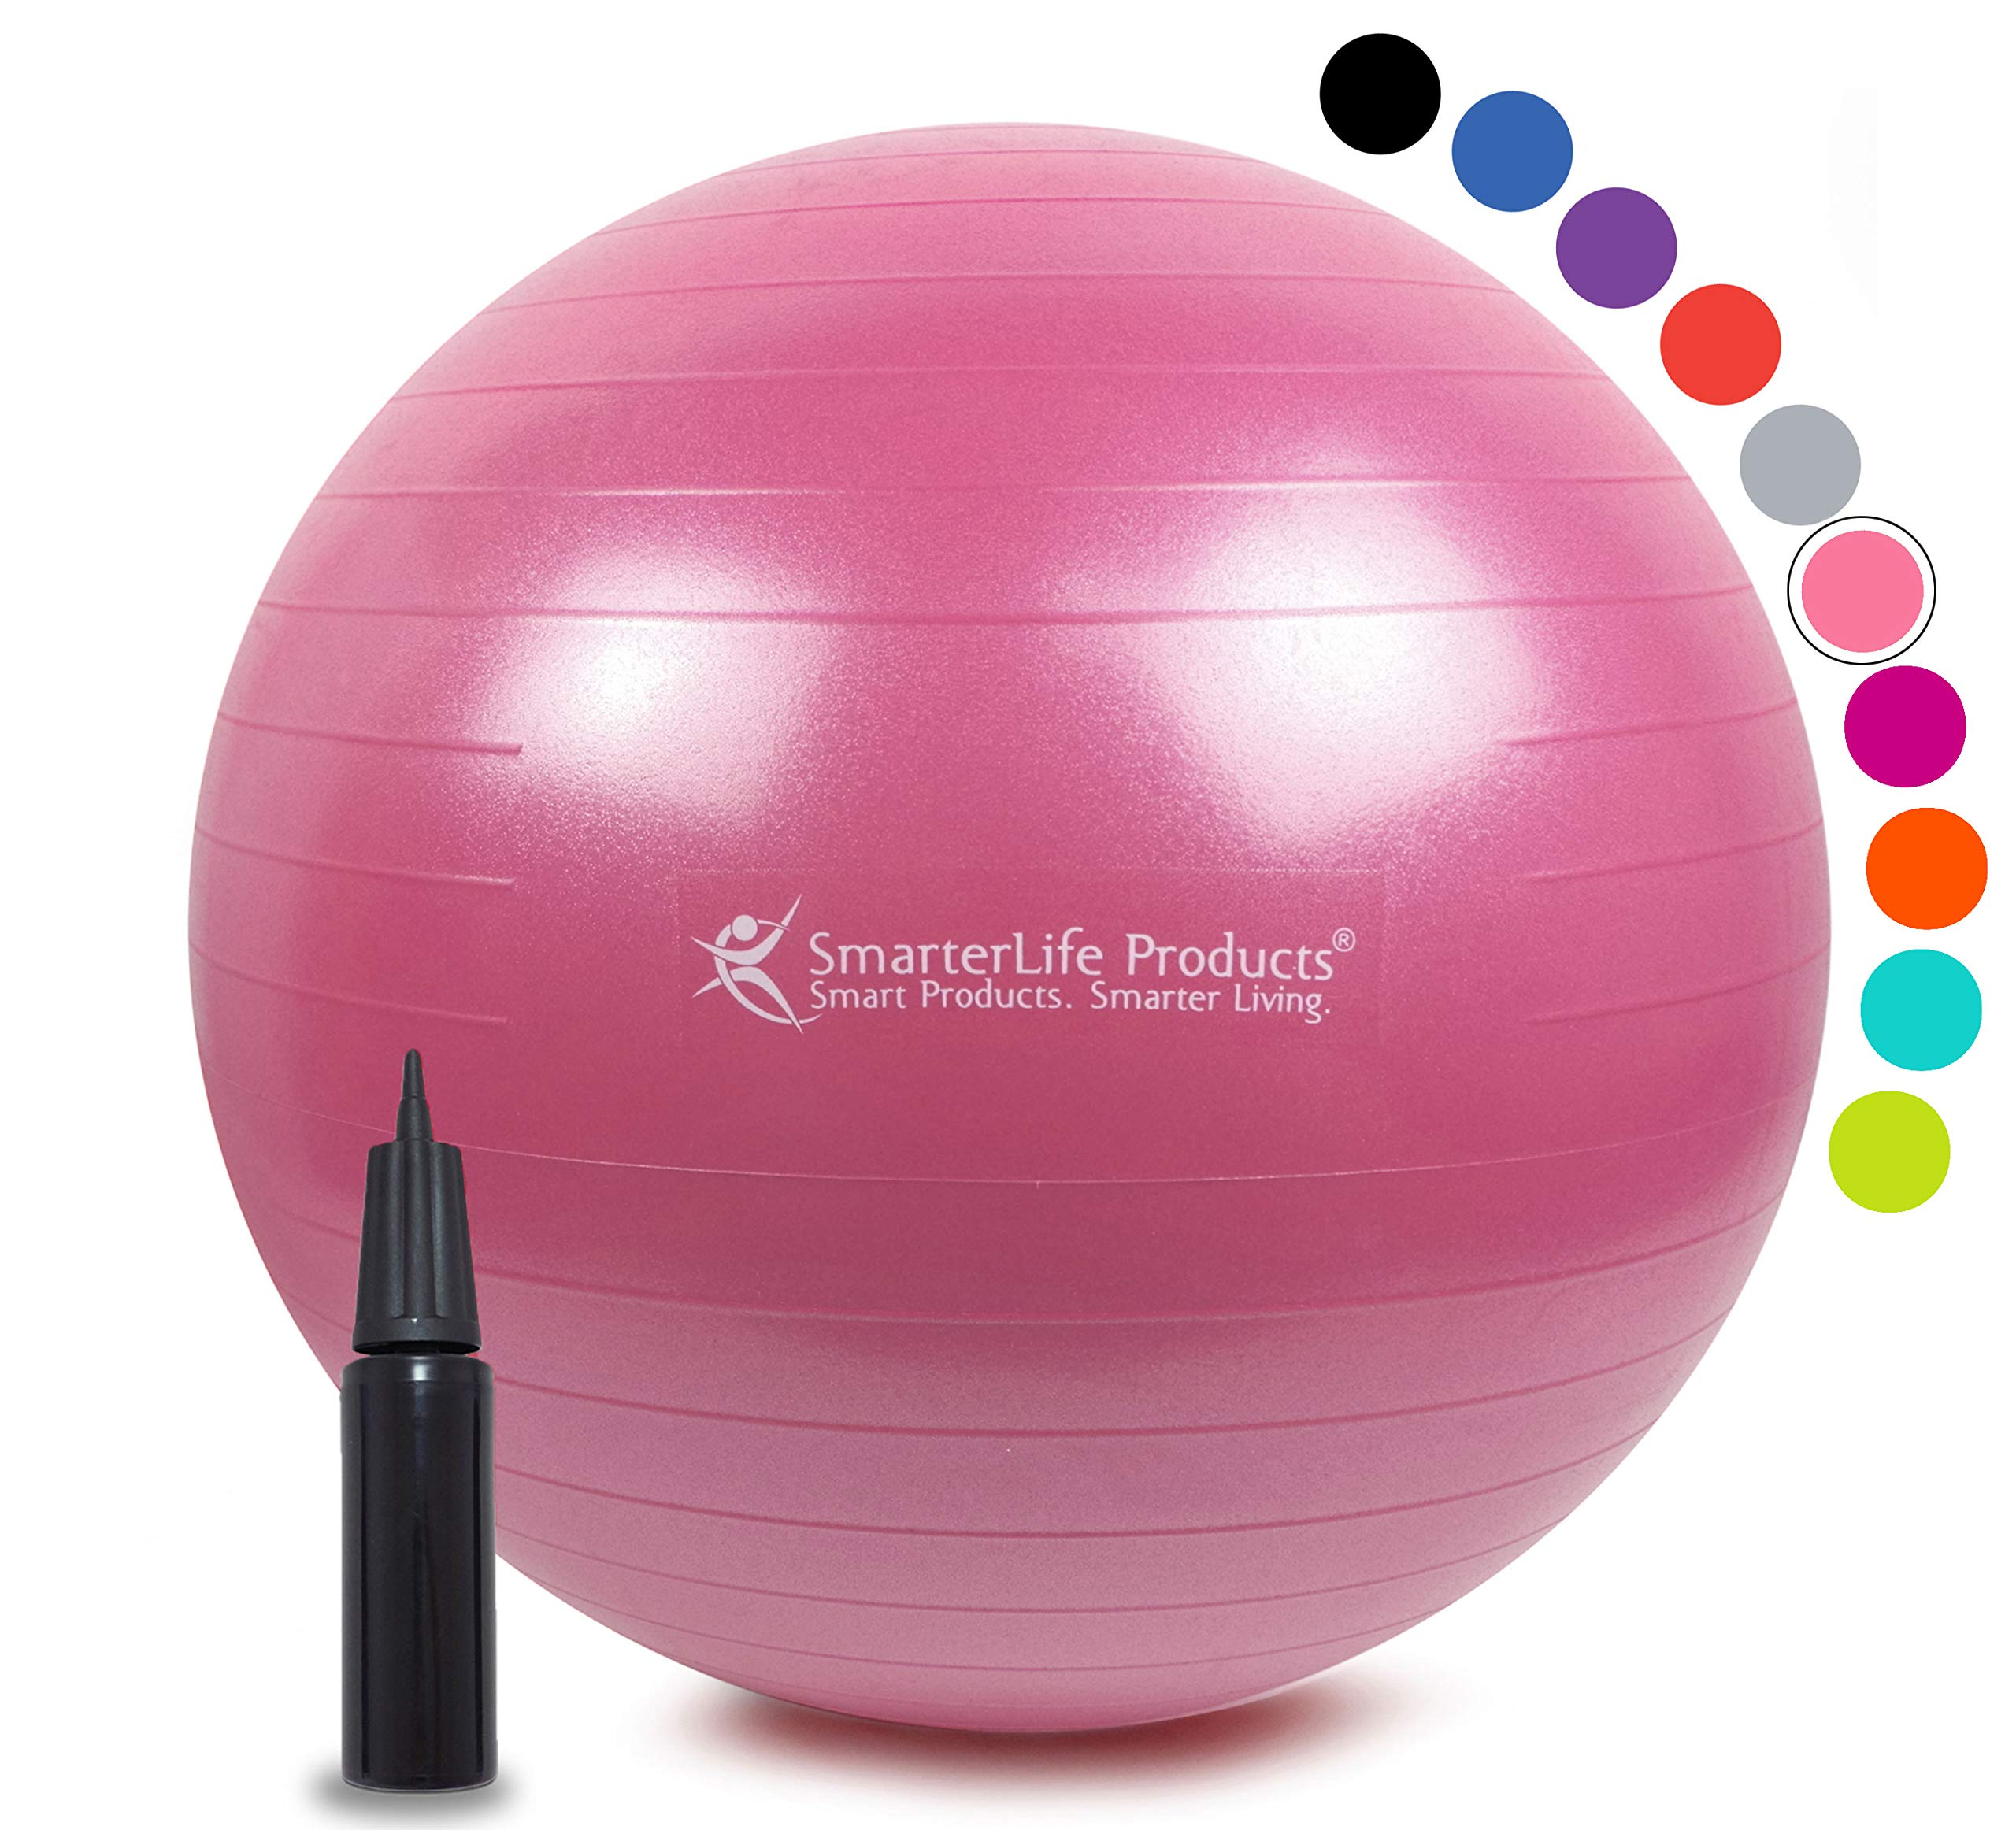 Exercise Ball for Yoga, Balance, Stability from SmarterLife - Fitness, Pilates, Birthing, Therapy, Office Ball Chair, Classroom Flexible Seating - Anti Burst, Non Slip + Workout Guide (Pink, 45) by SmarterLife Products (Image #1)